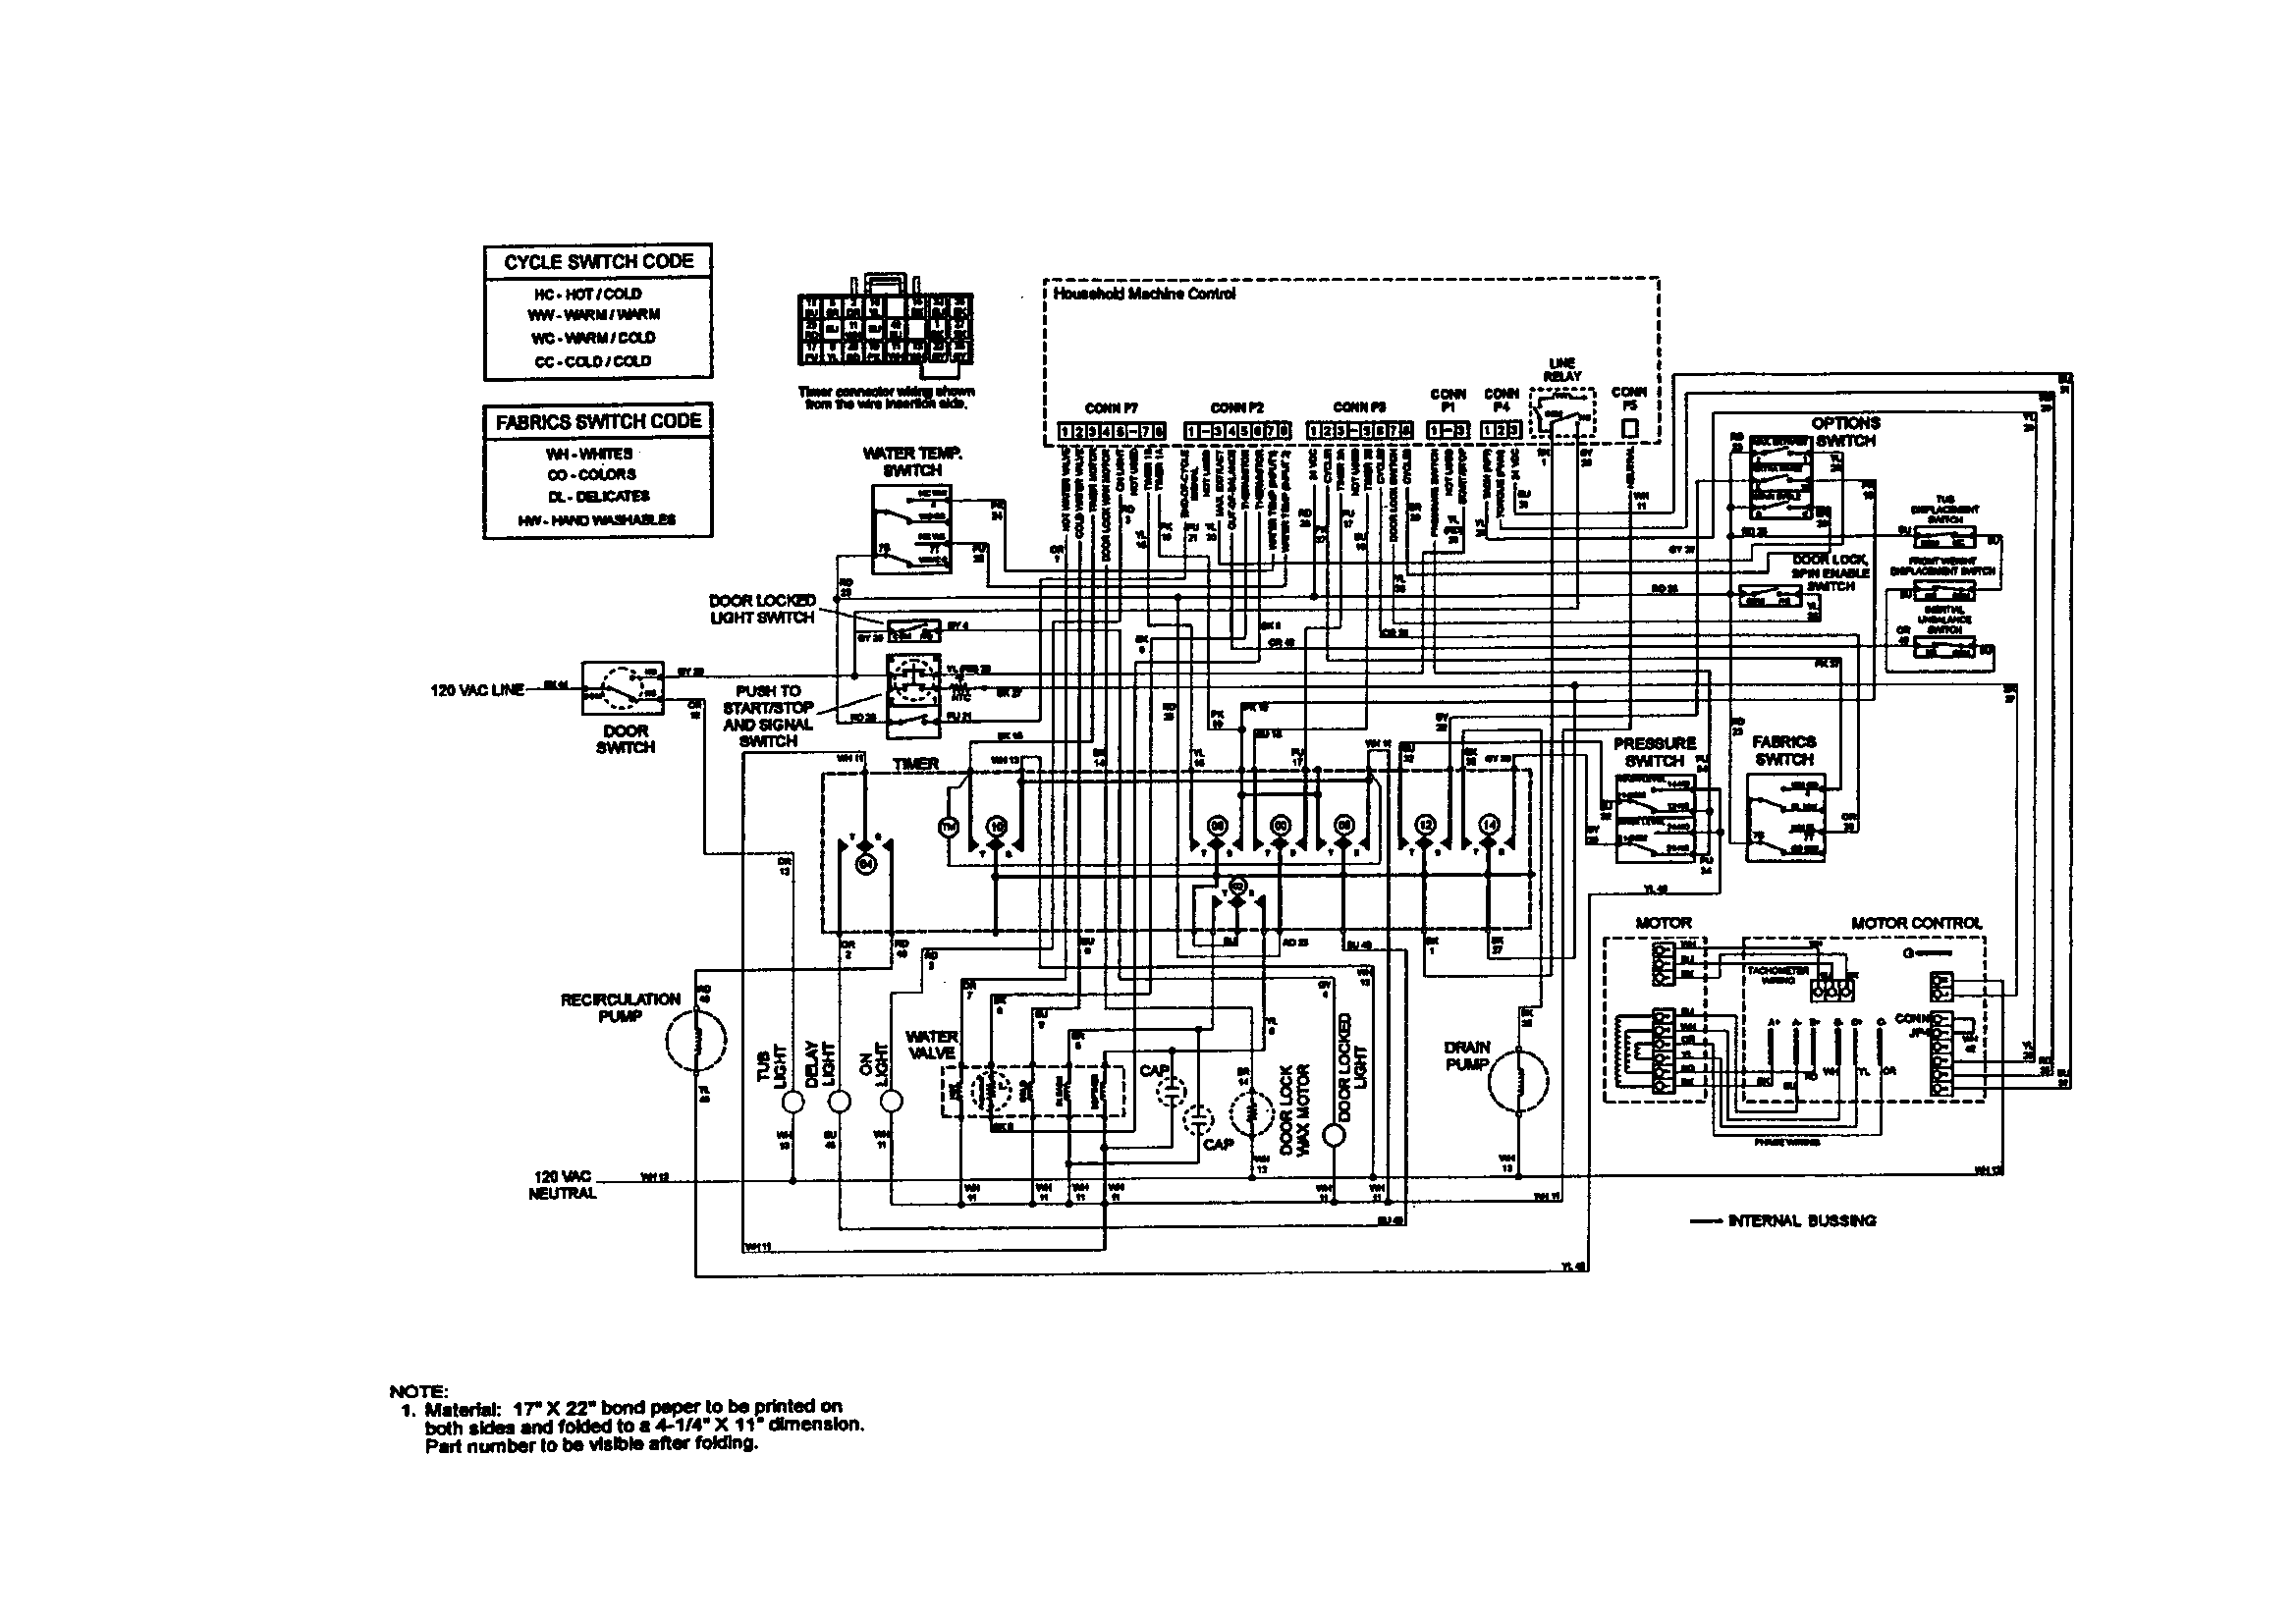 [GJFJ_338]  EL_2880] Furnace Parts Diagram Together With Basic Gas Furnace Wiring  Diagram Schematic Wiring | Sears Furnace Wiring Diagram |  | Denli Sputa Numap Mohammedshrine Librar Wiring 101